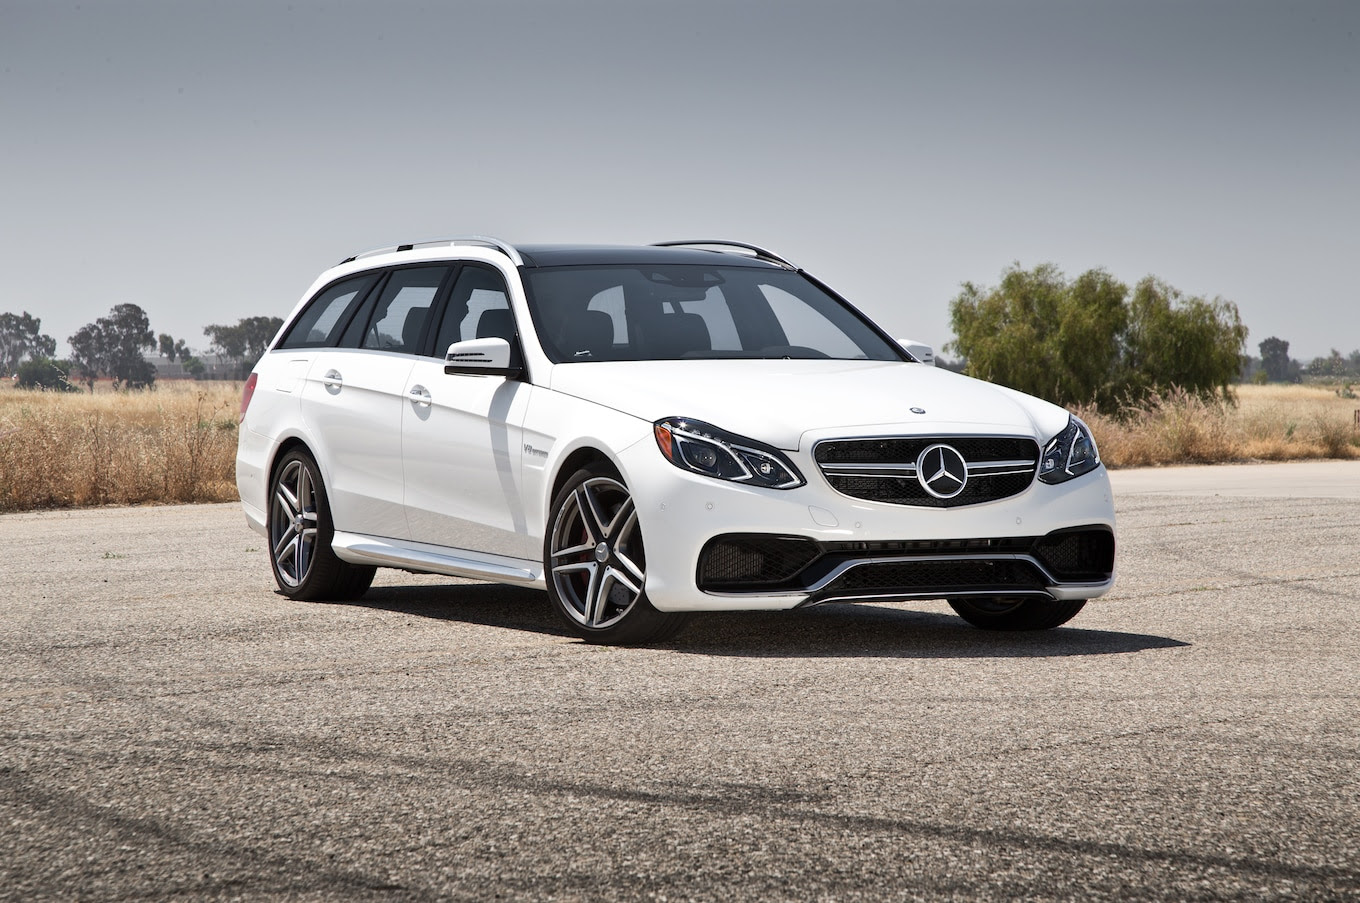 2014 Mercedes-Benz E63 AMG S-Model 4Matic Wagon First Test ...